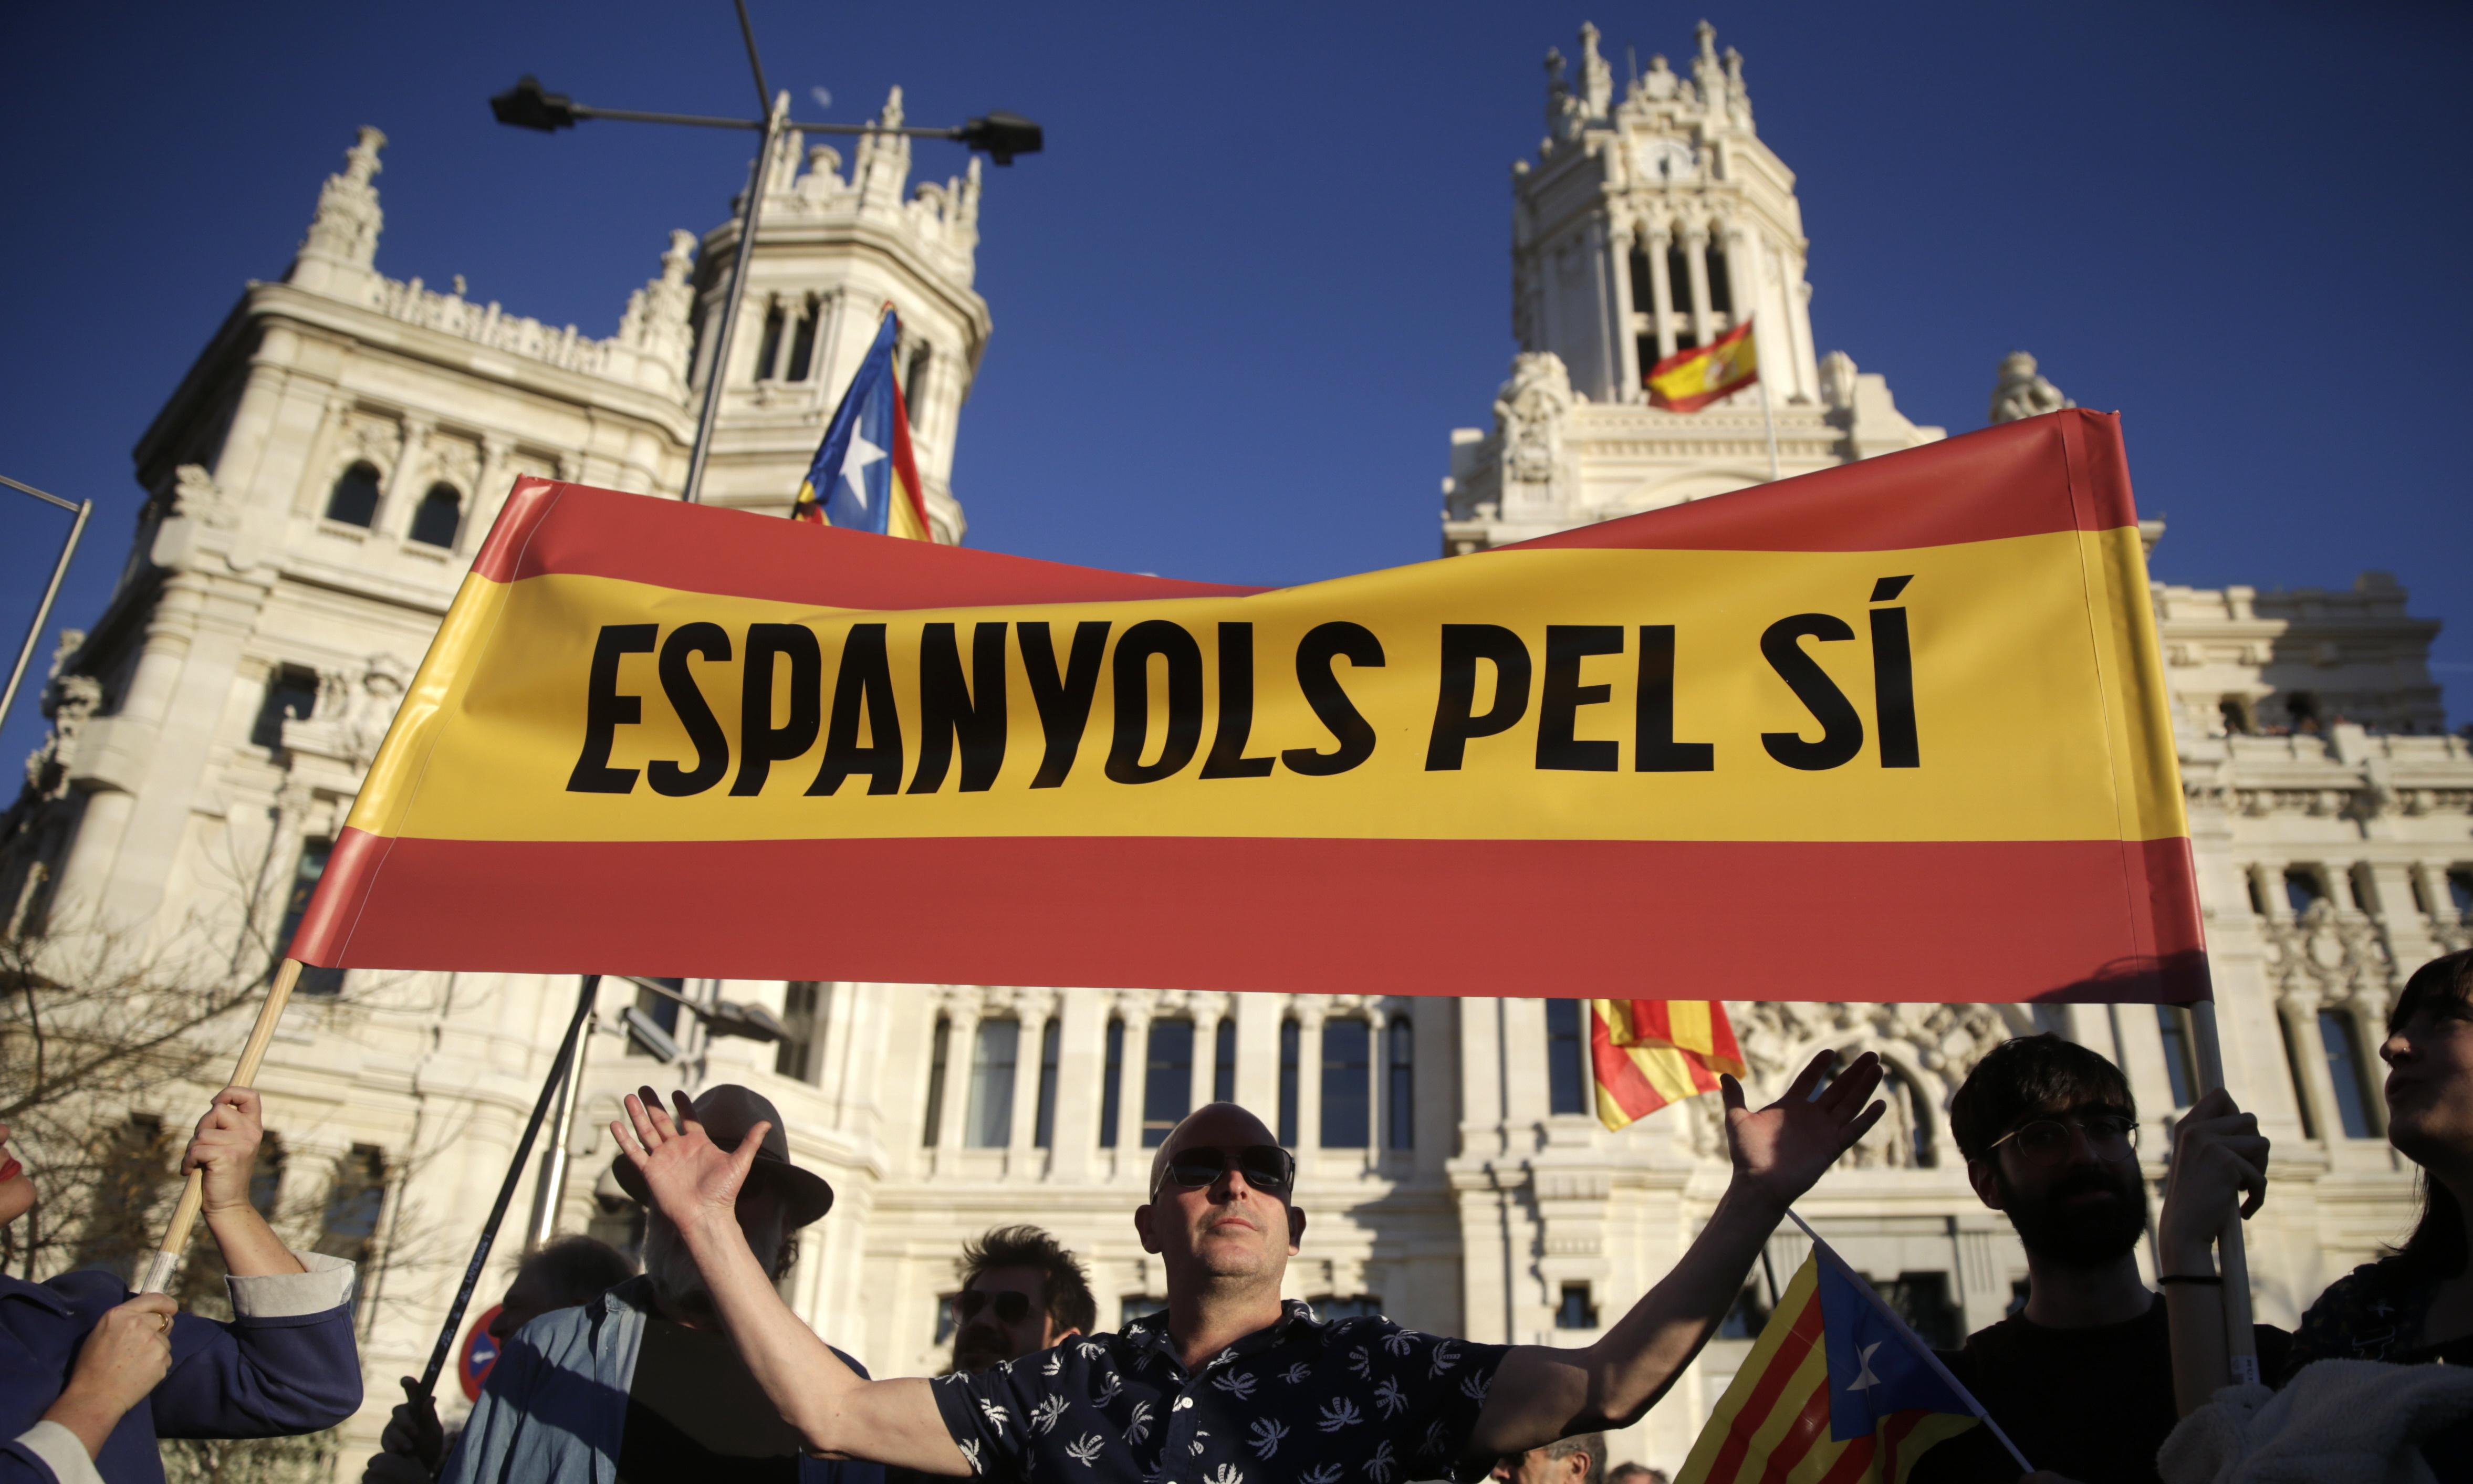 Catalan independence march passes through Madrid peacefully